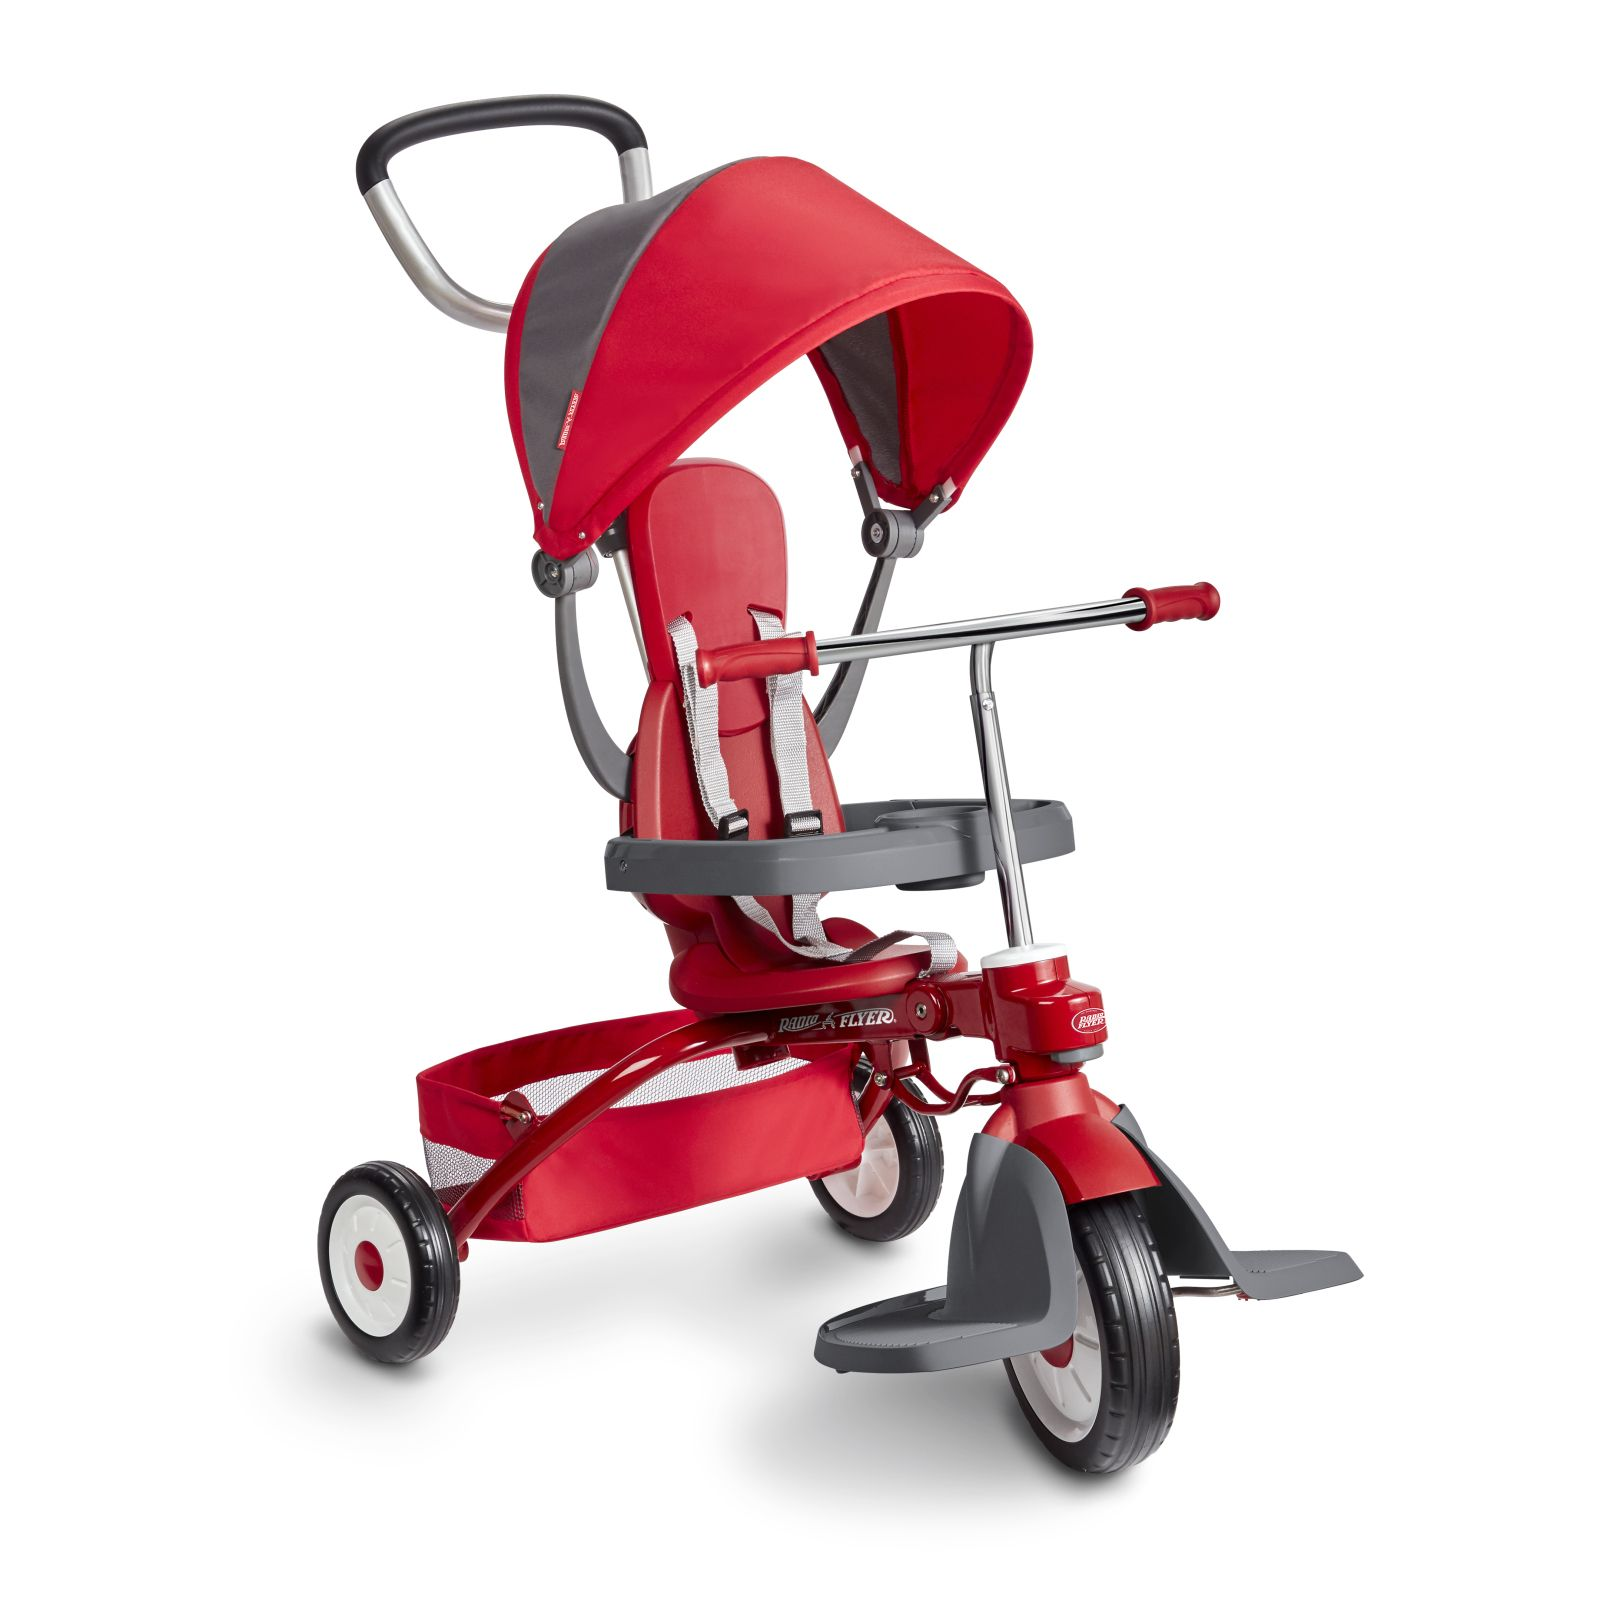 Sports Outdoors Radio Flyer Trike Toys For 1 Year Old